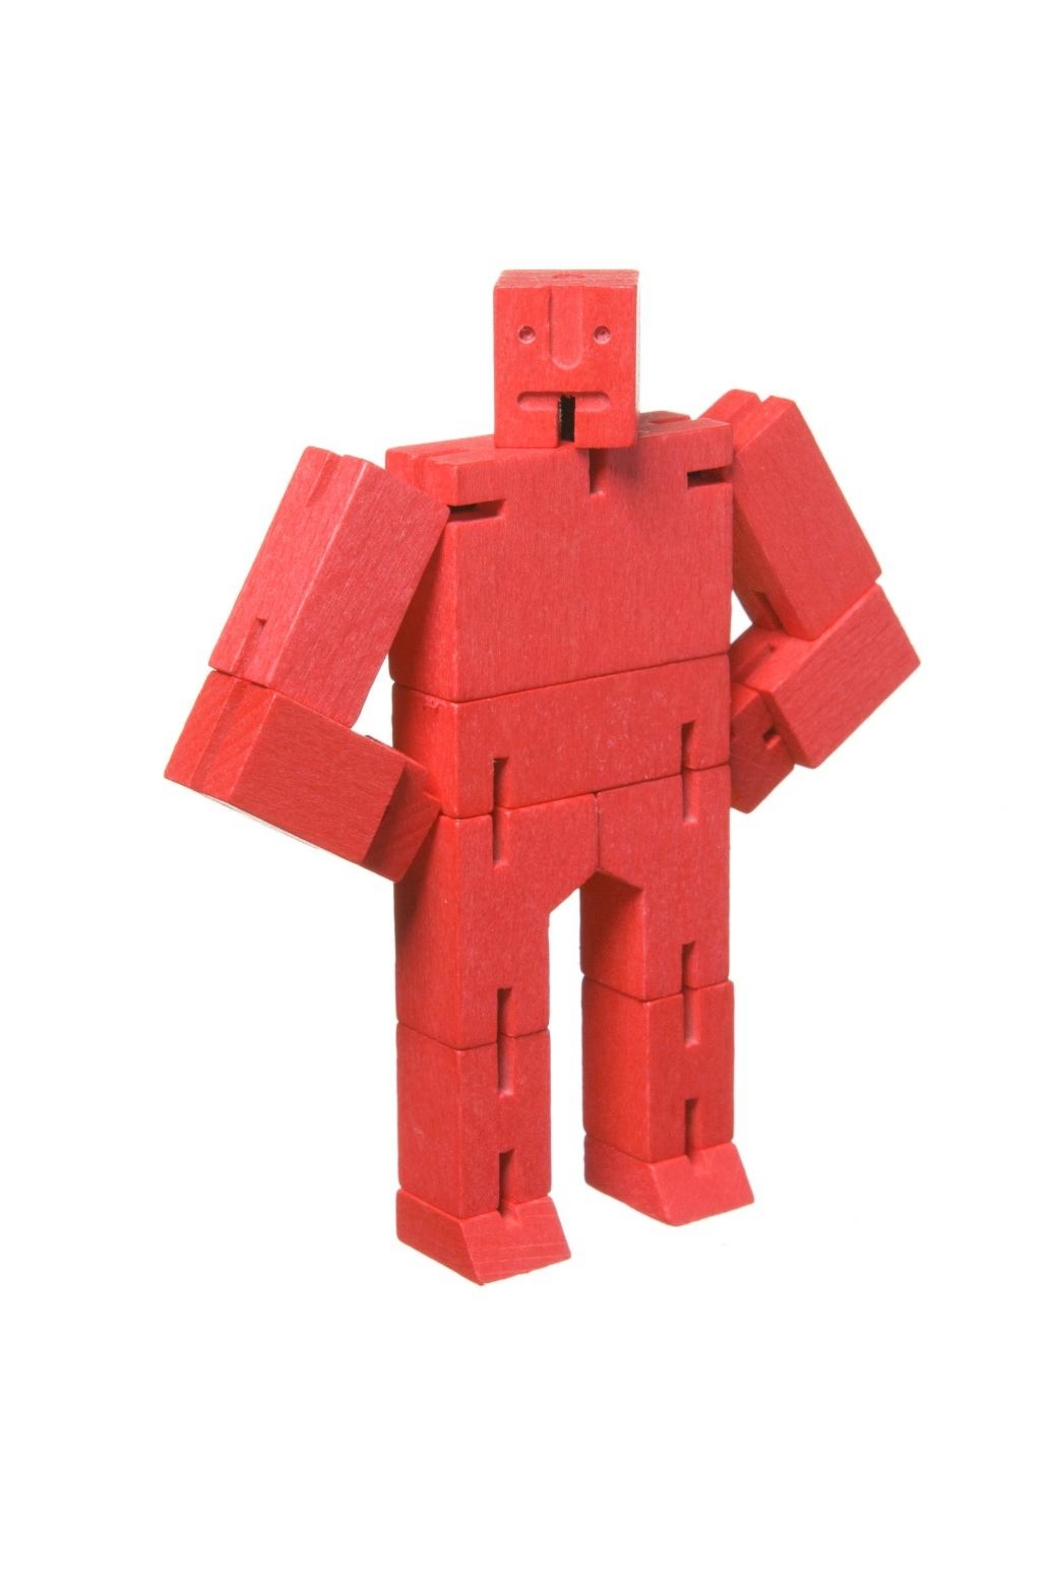 Areaware Cubebot Small - Main Image